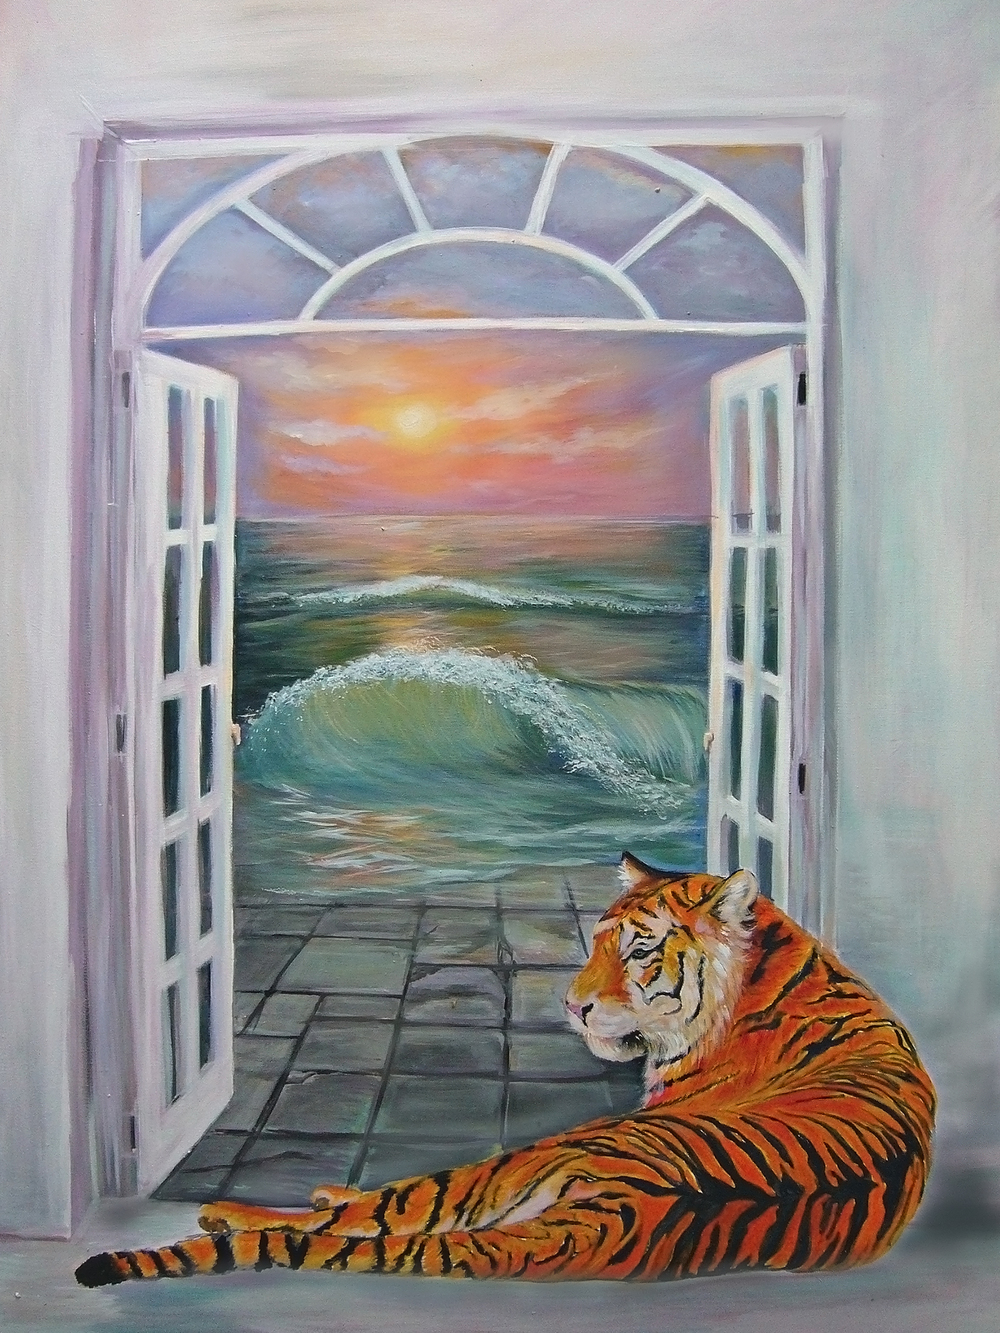 tiger_window_wall_art_sunset_sea_wave_sonnenuntergang.jpg